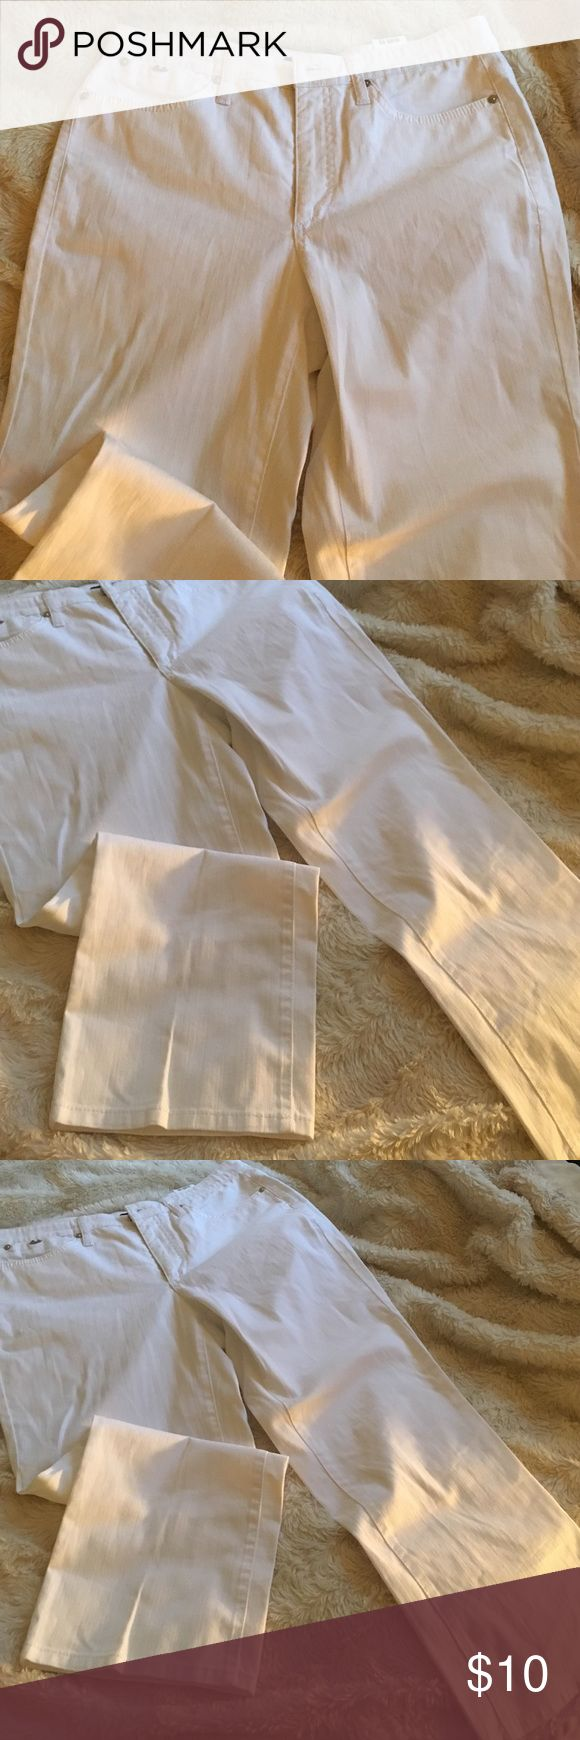 Cambio white crop jeans Bright white and in great condition. Cambio Jeans  Jeans Ankle & Cropped